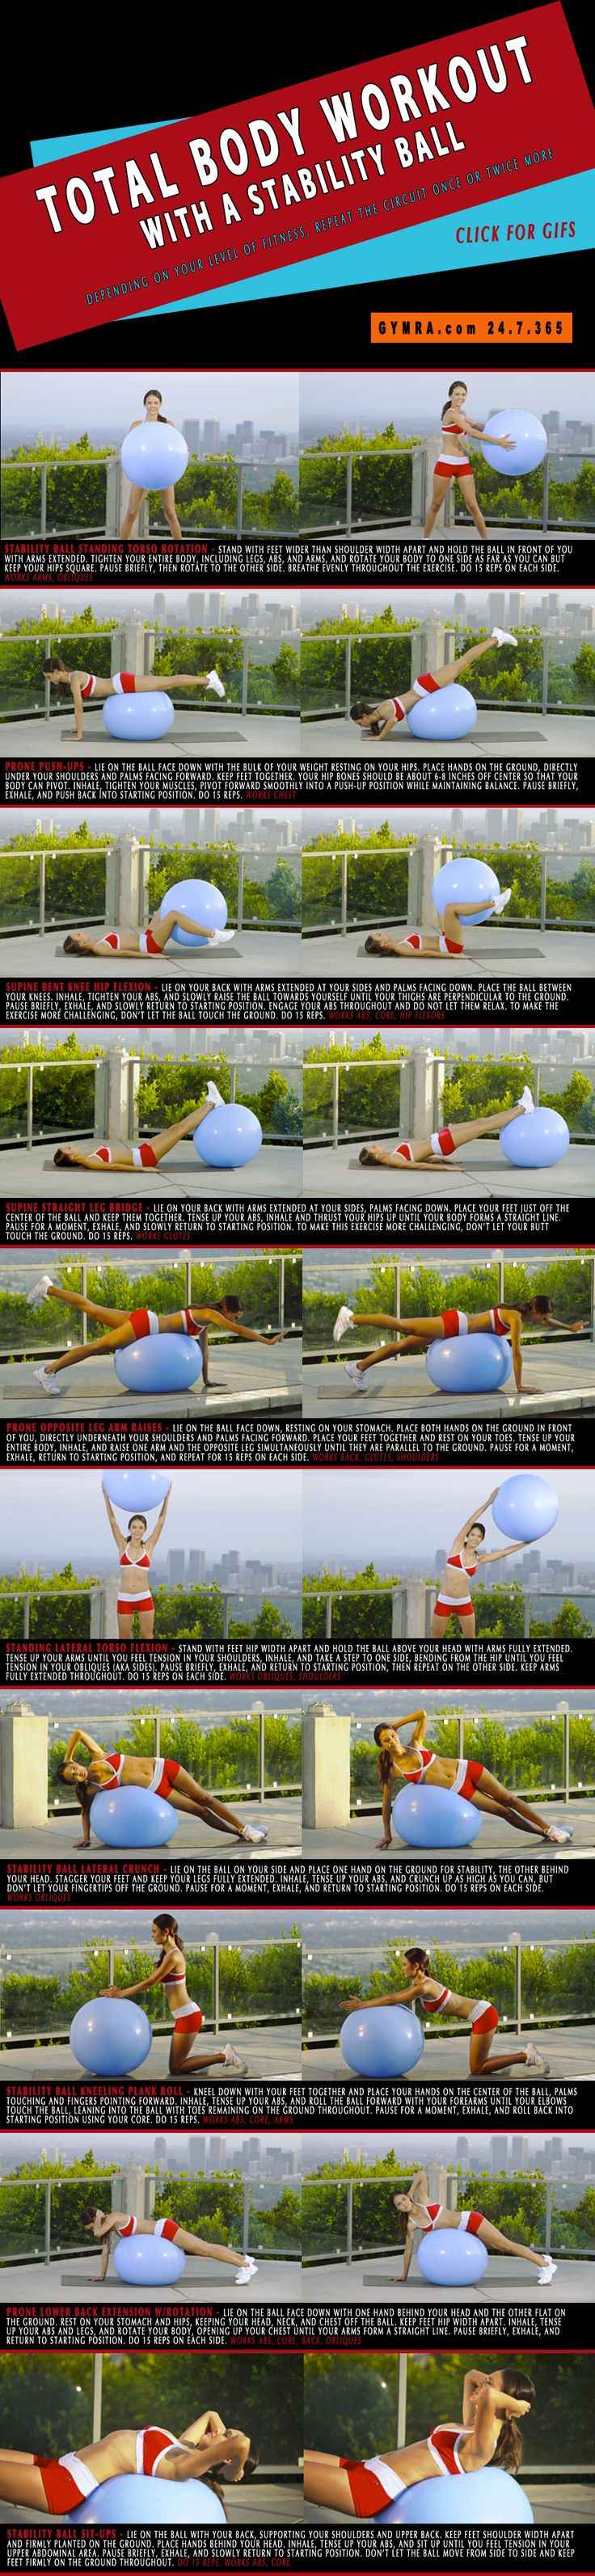 Total Body Workout. This is a beginner's #workout but effective for all levels! A stability ball engages all your #muscles and builds strength while improving stability. There aren't many other #fitness tools that work your entire body better than an #exercise ball will! This total body toner will sculpt you from head to toe while burning major calories and shedding fat! Click on the image to see the moves in GIF form. #weightloss #health #abs